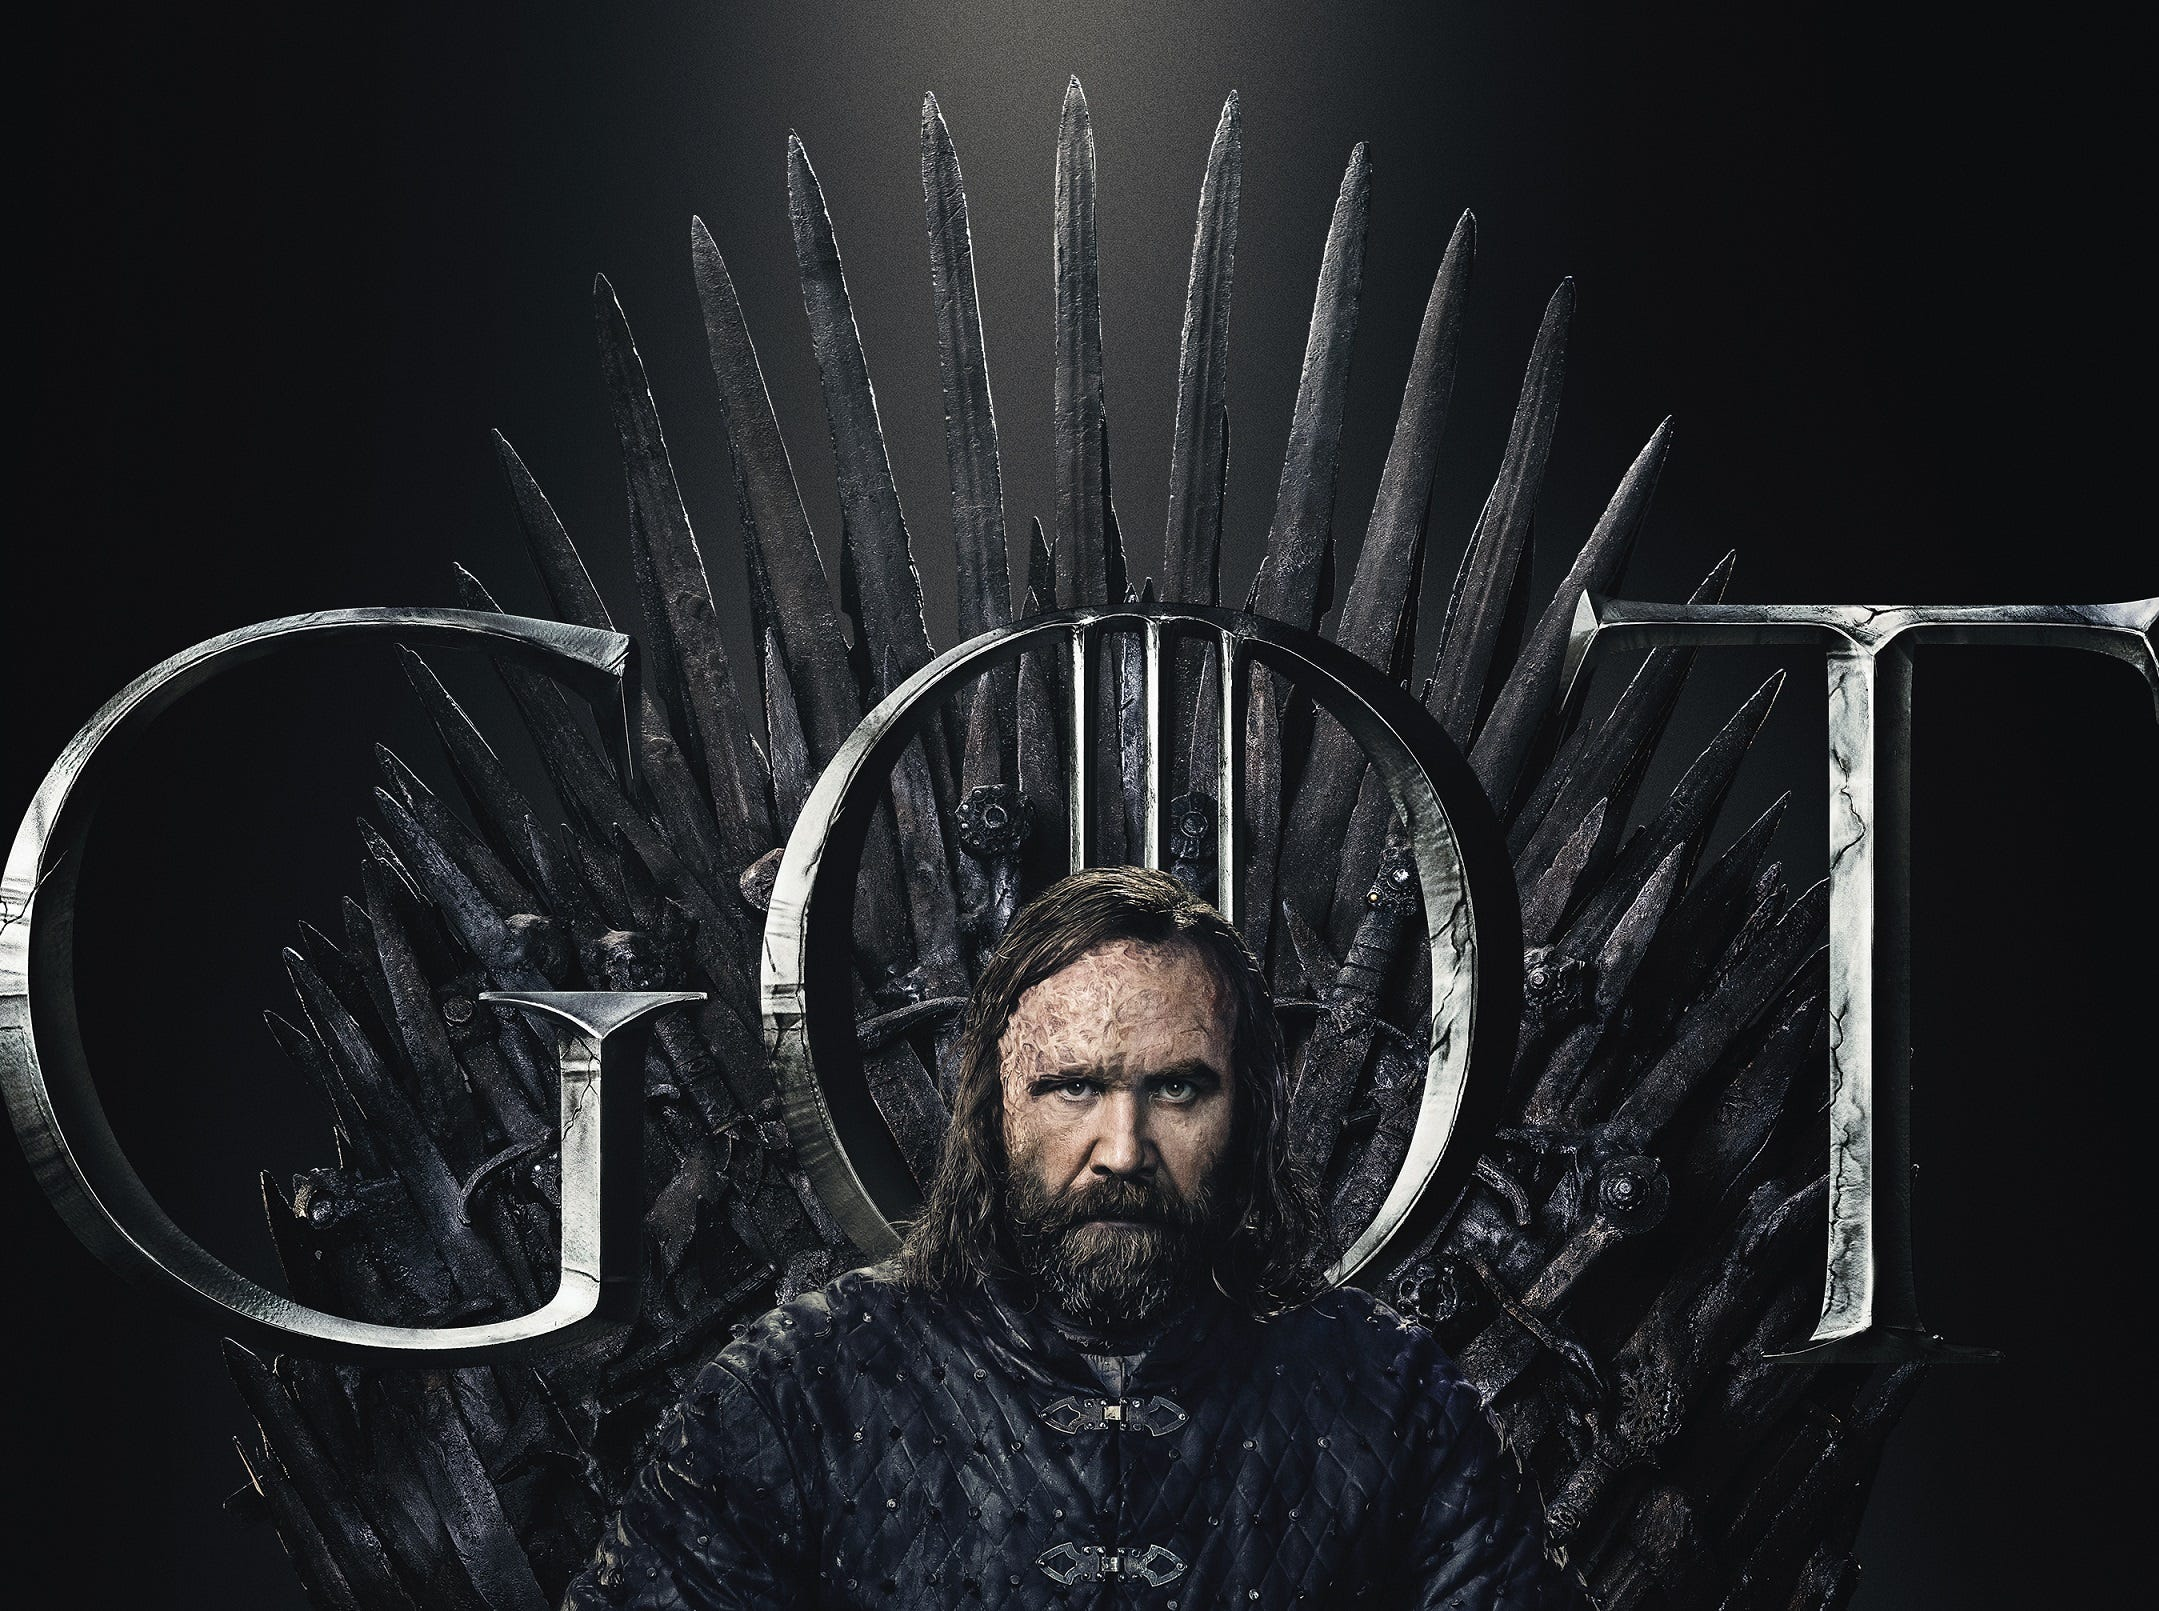 The Hound (Rory McCann) is still scarred and still sullen. Hard to believe he's changed so much since Season 1.